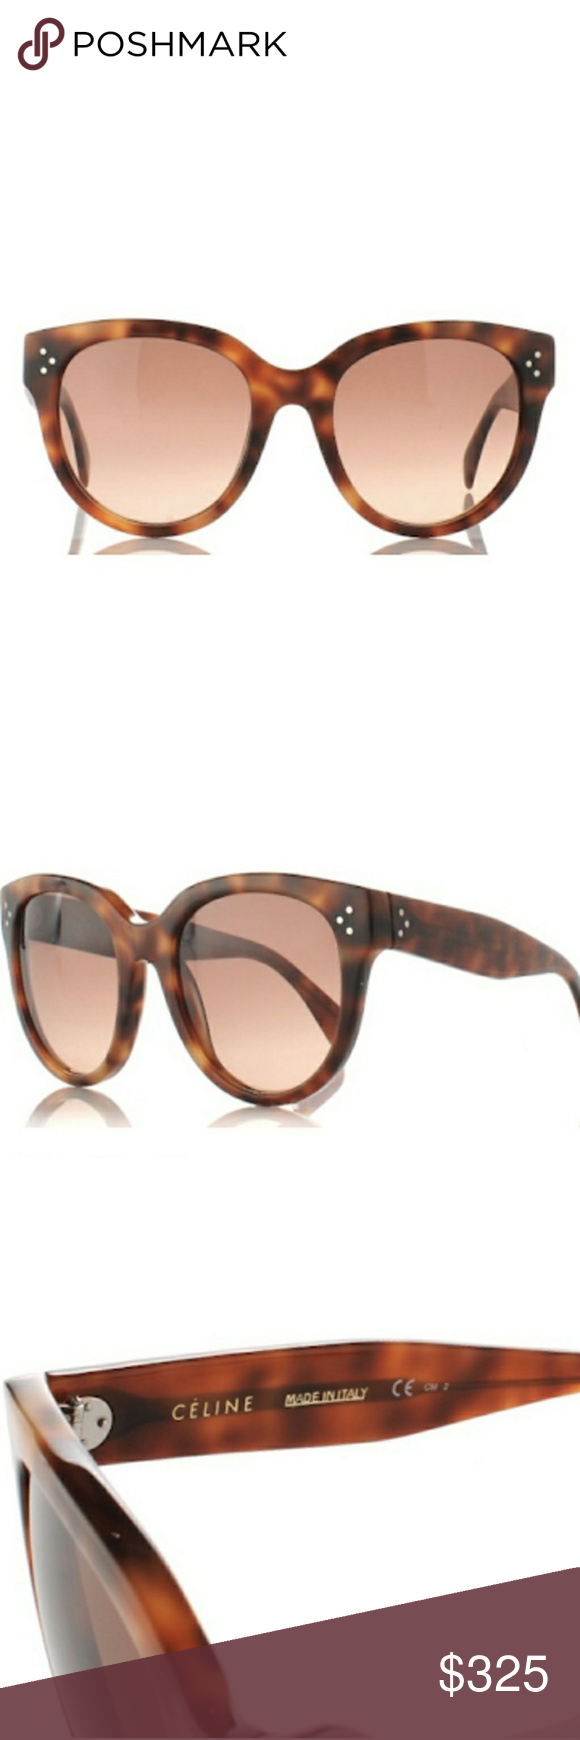 1a68293ad4 Céline Audrey Havana Brown Style  CL41755. Round Cat Eye frame.  Tortoiseshell Hardware with Rose Brown lens. Perfectly new condition.